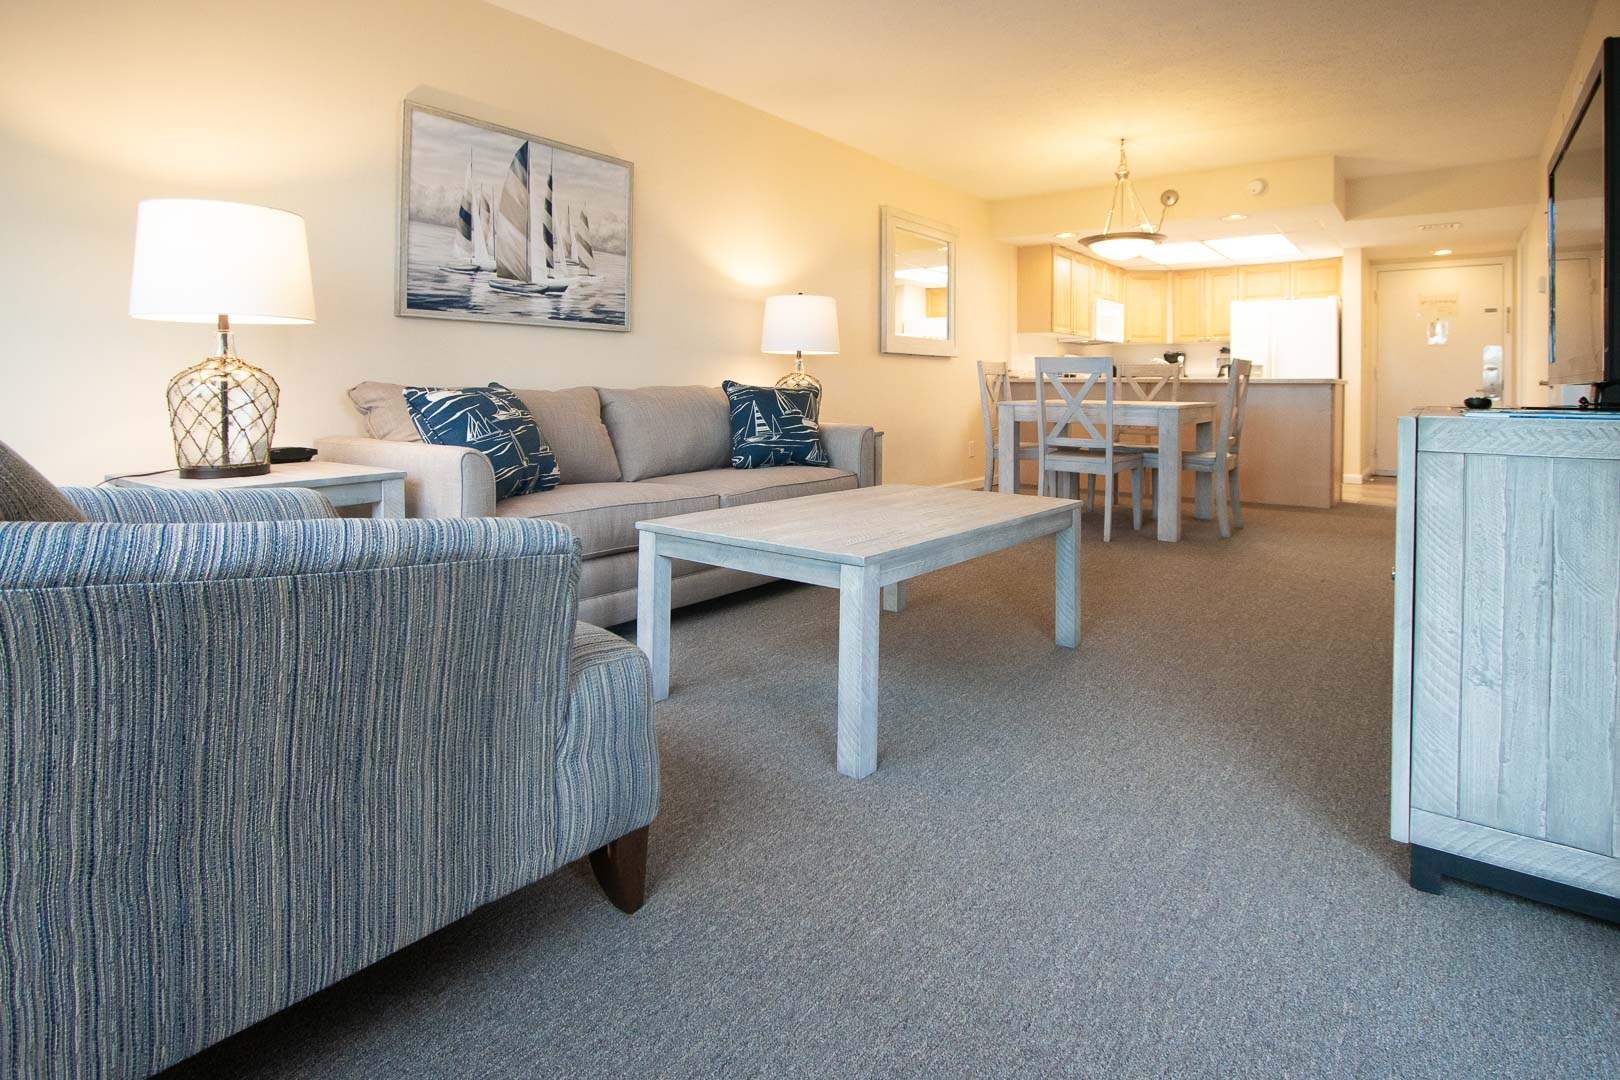 A clean living room area at VRI's Bay Club of Sandestin in Florida.